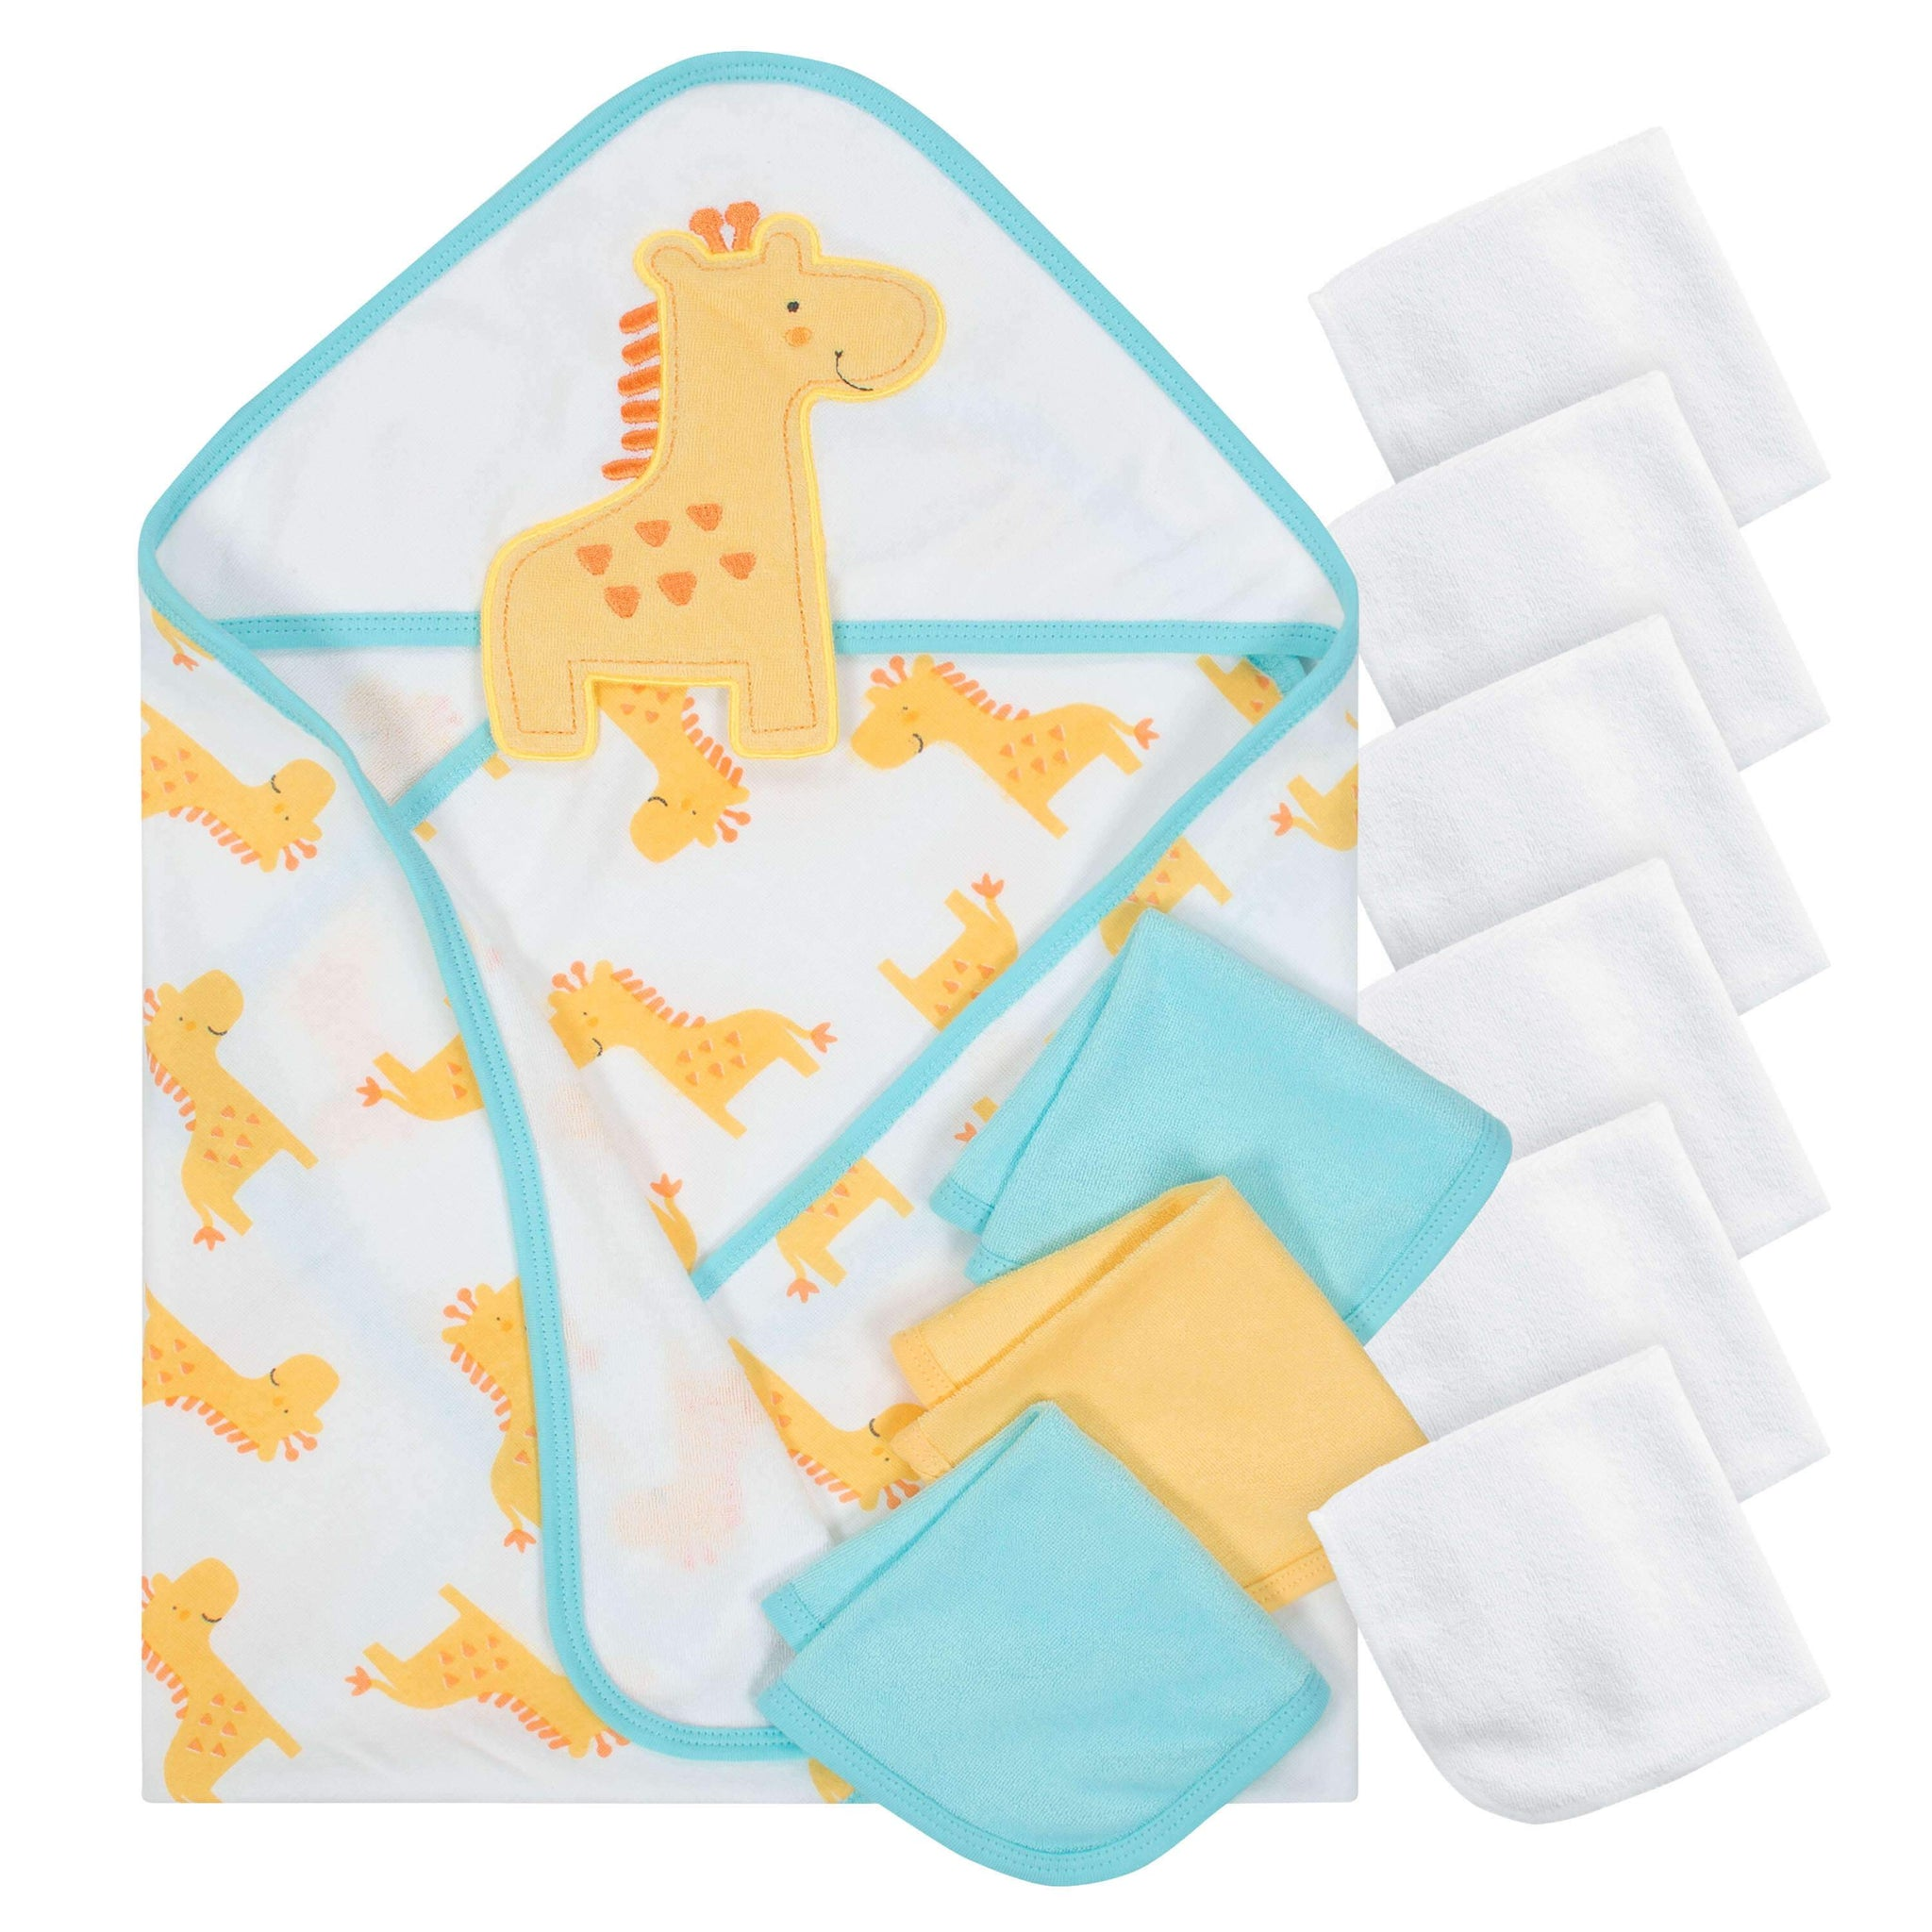 10-Piece Boys Terry Hooded Towel and Washcloth Set - Giraffe